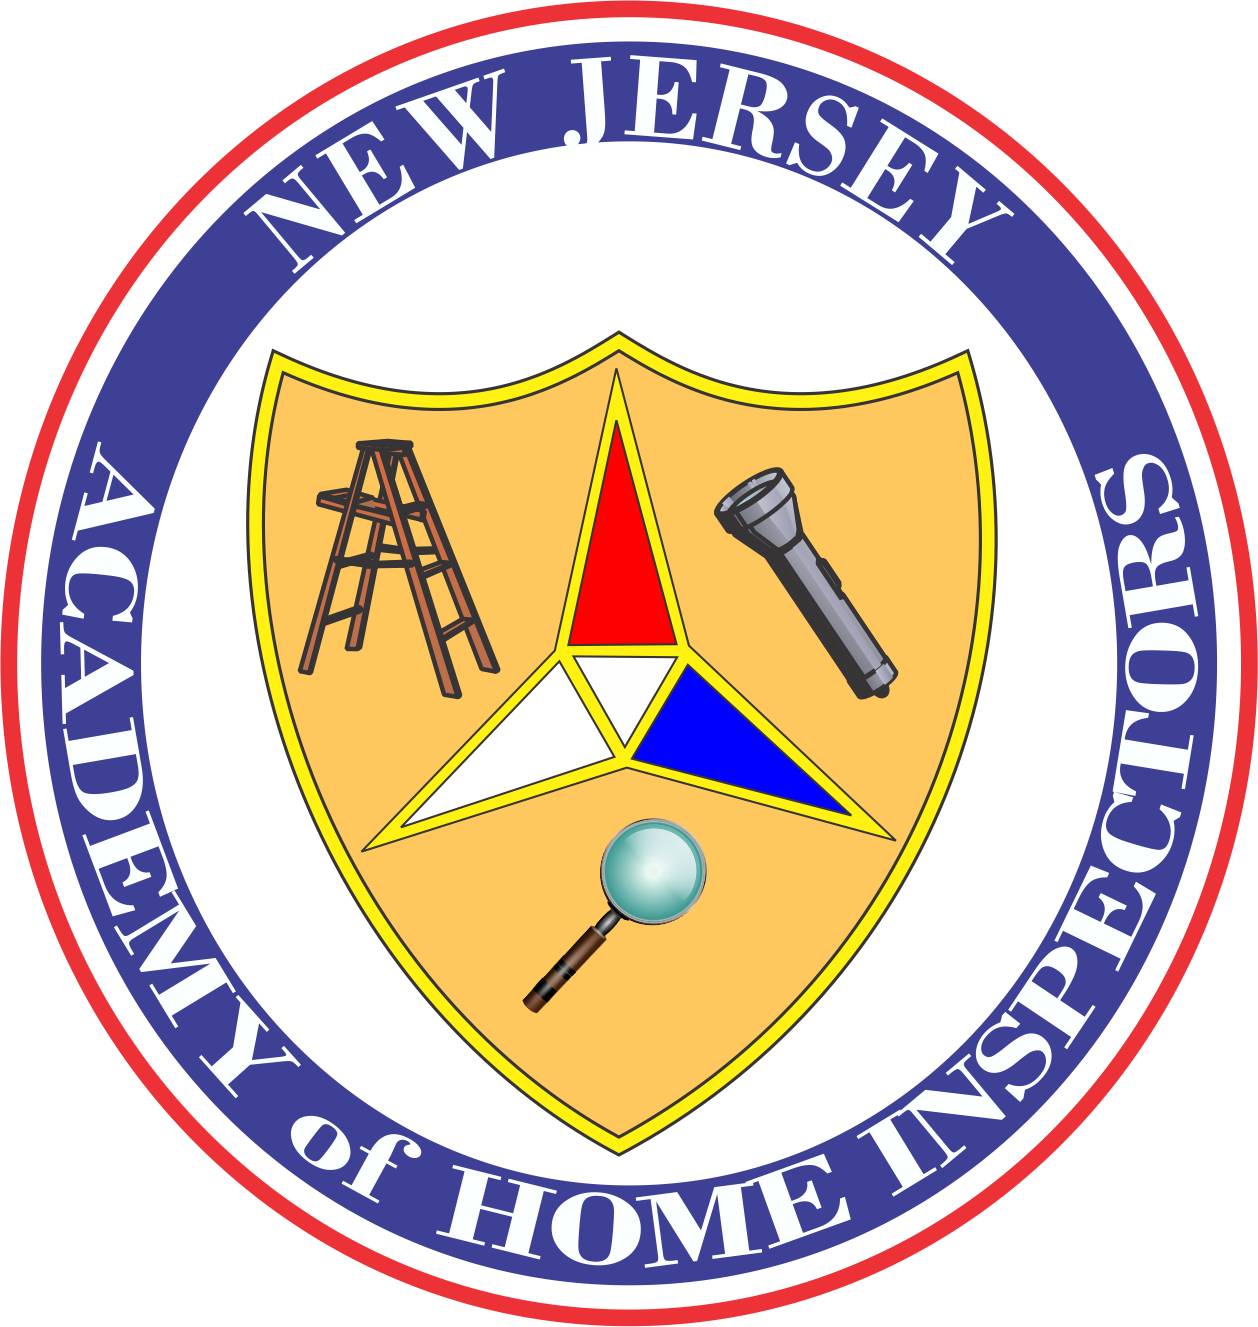 NJ Academy of Home Inspecters logo